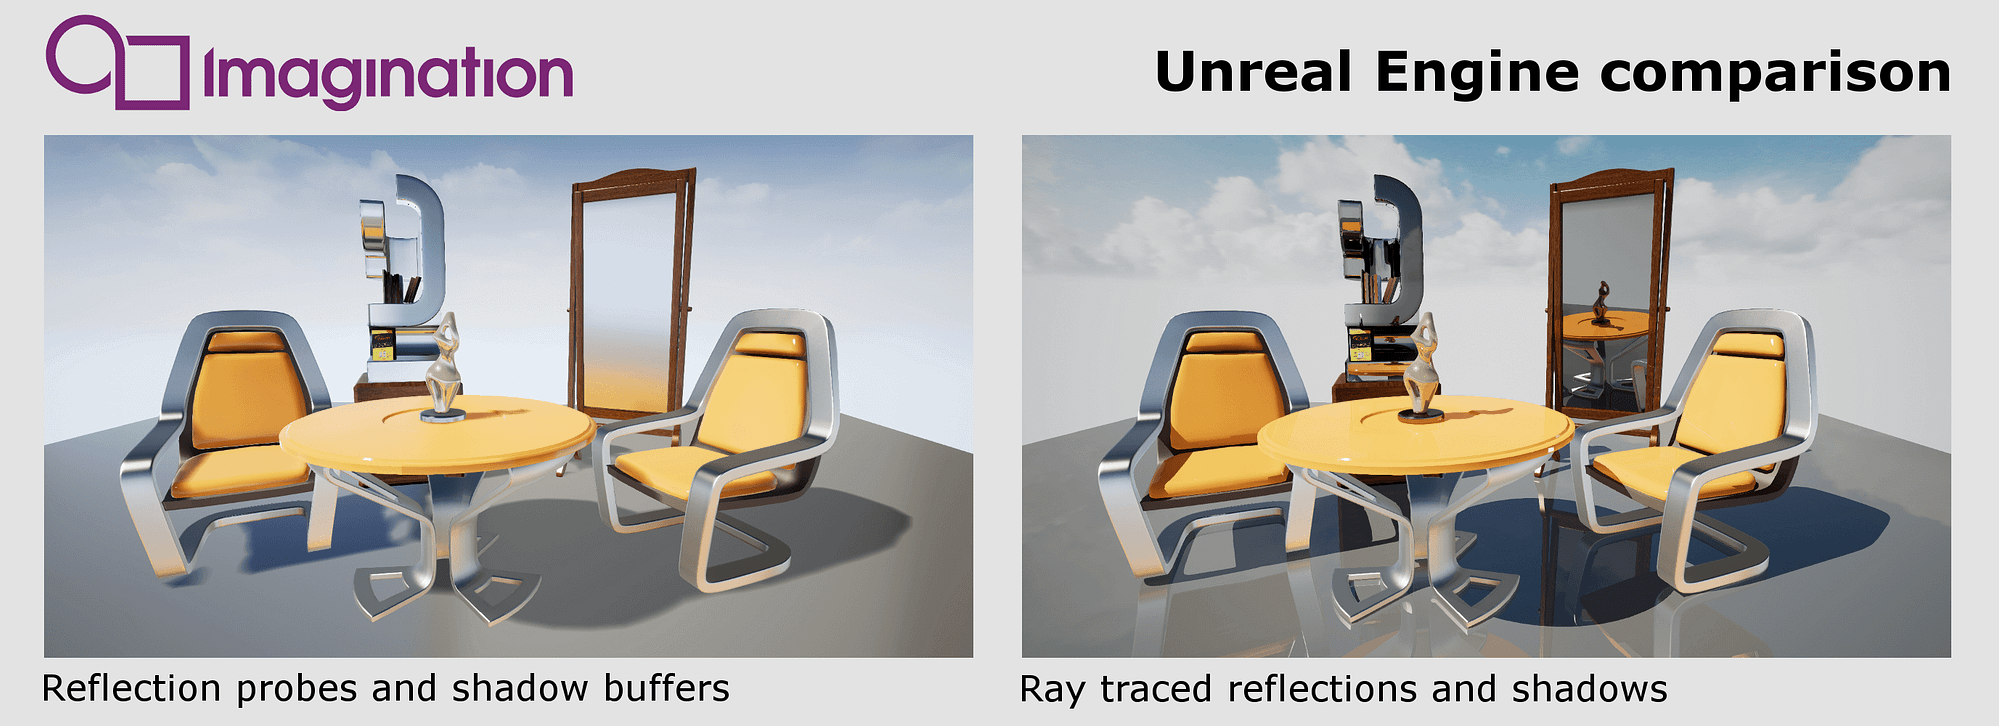 ray tracing unreal engine